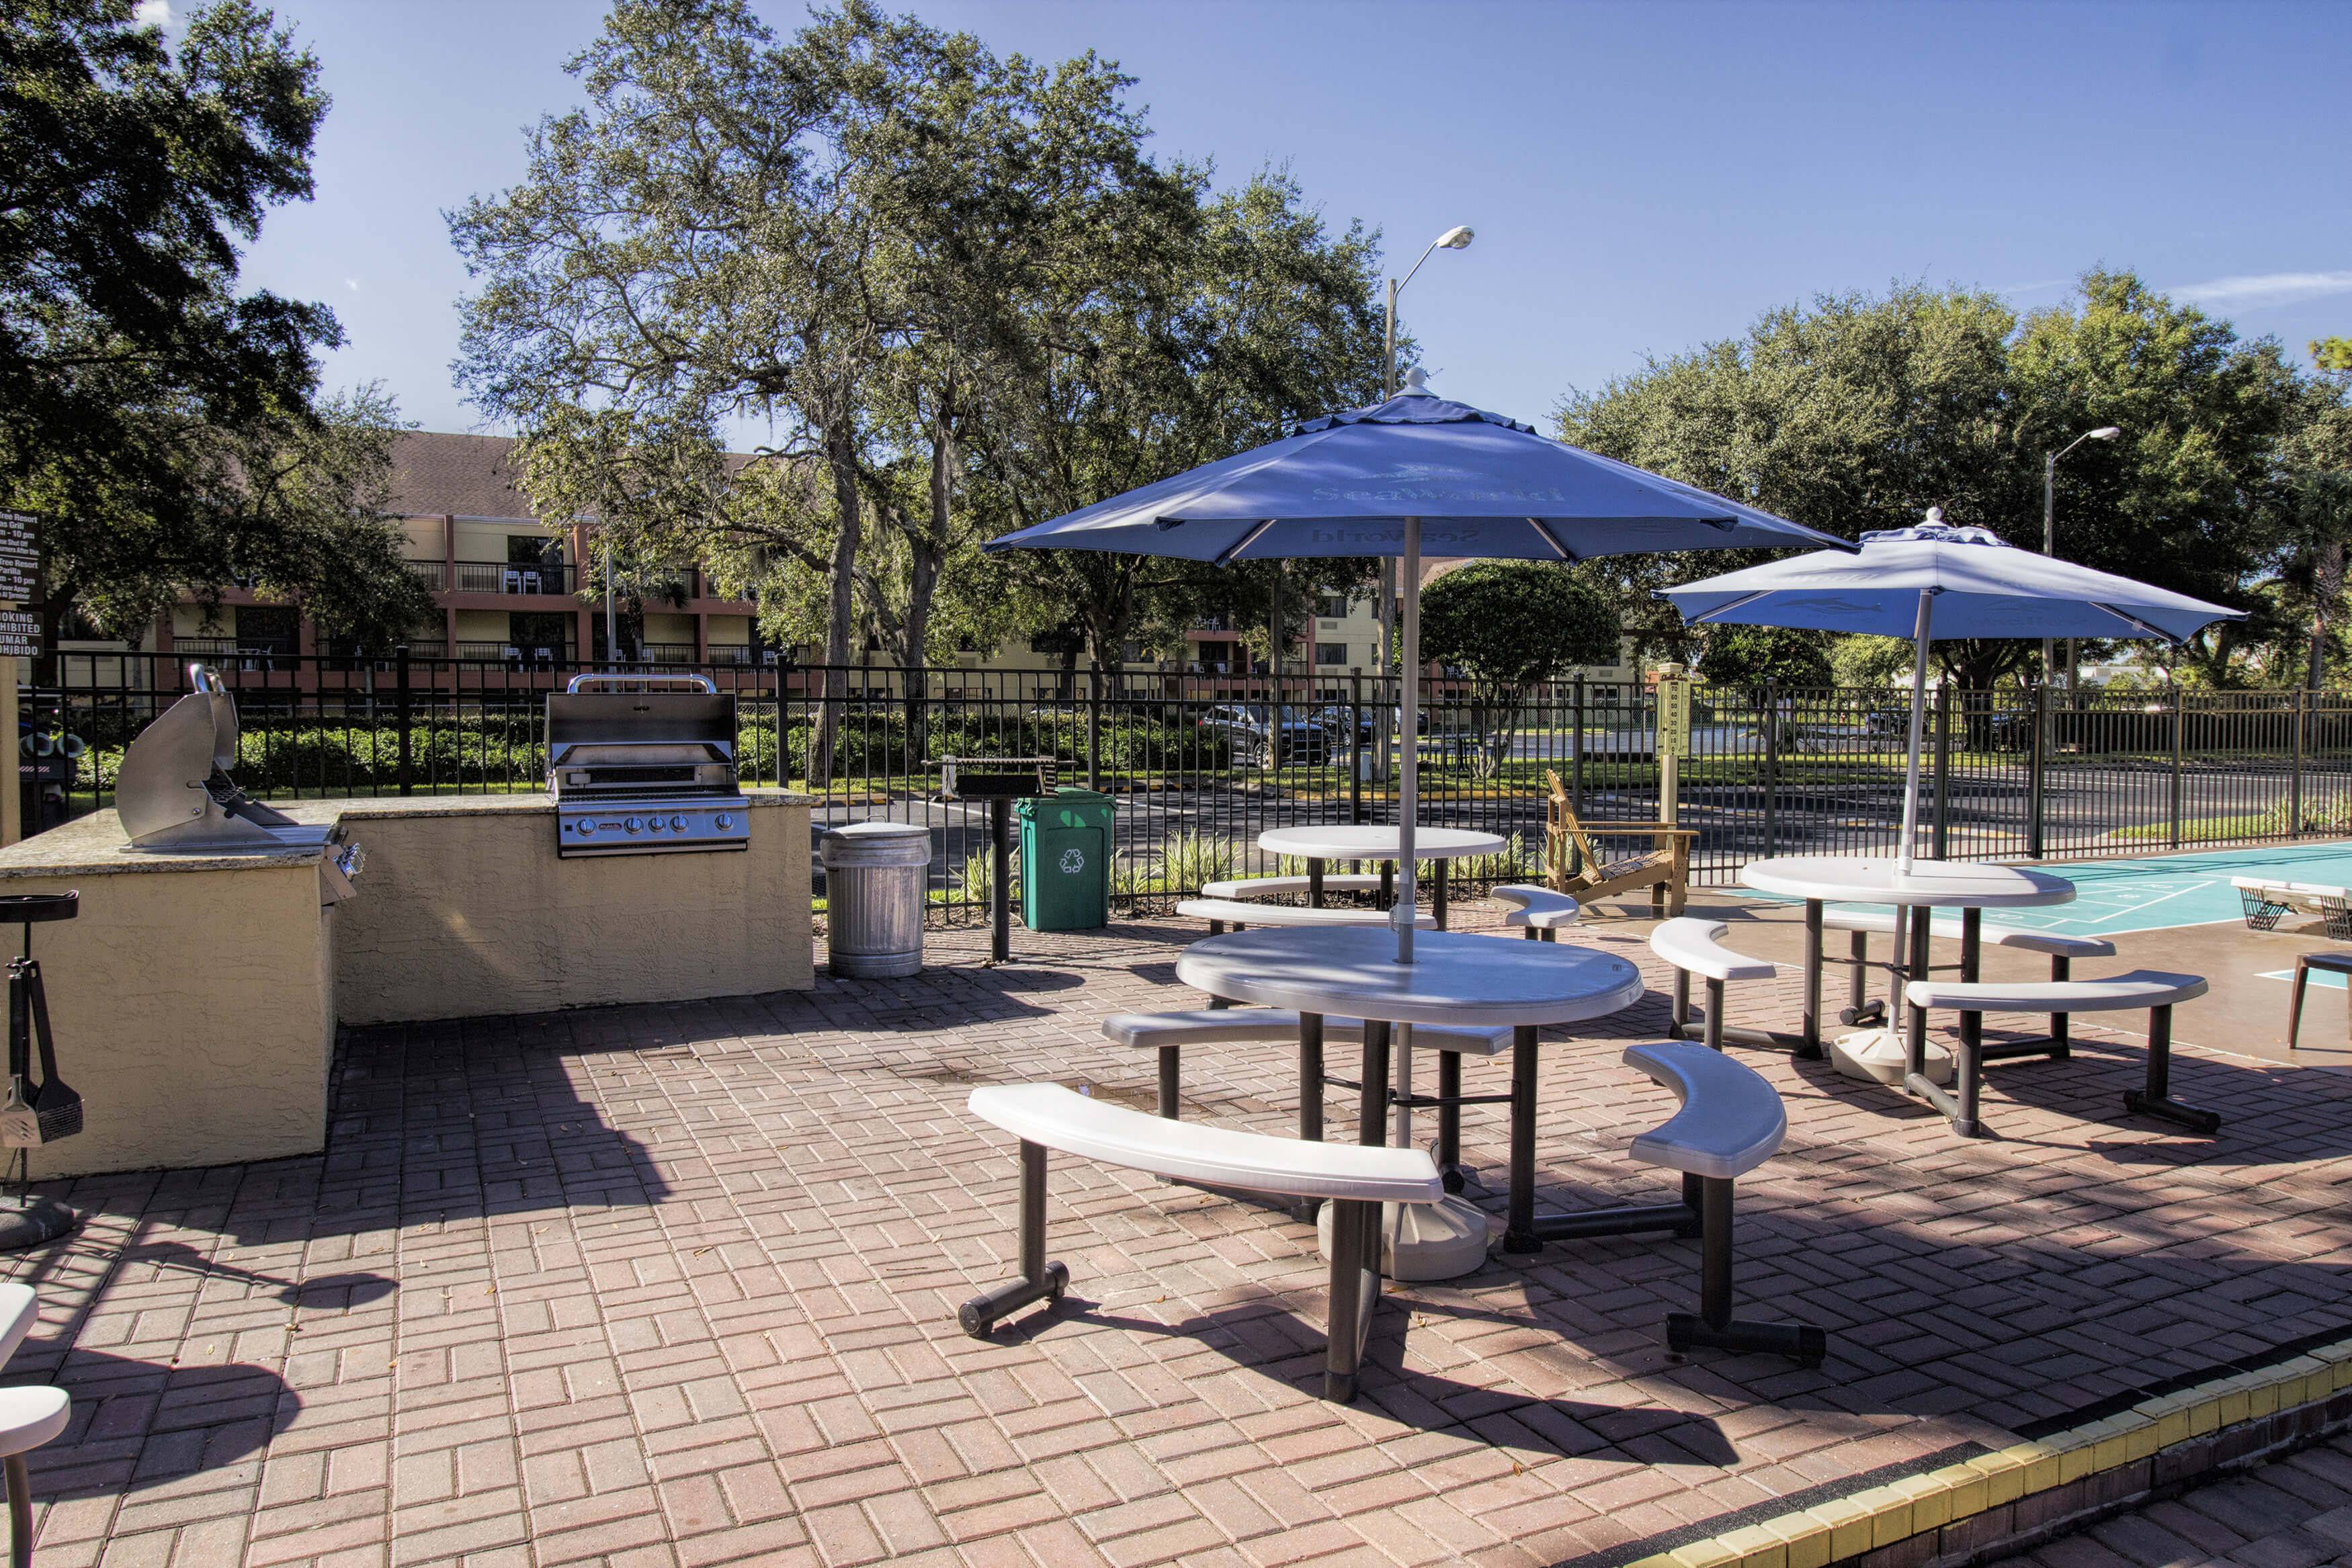 Outdoor barbecue area featuring gas grills and tables with umbrellas | Westgate Blue Tree Resort